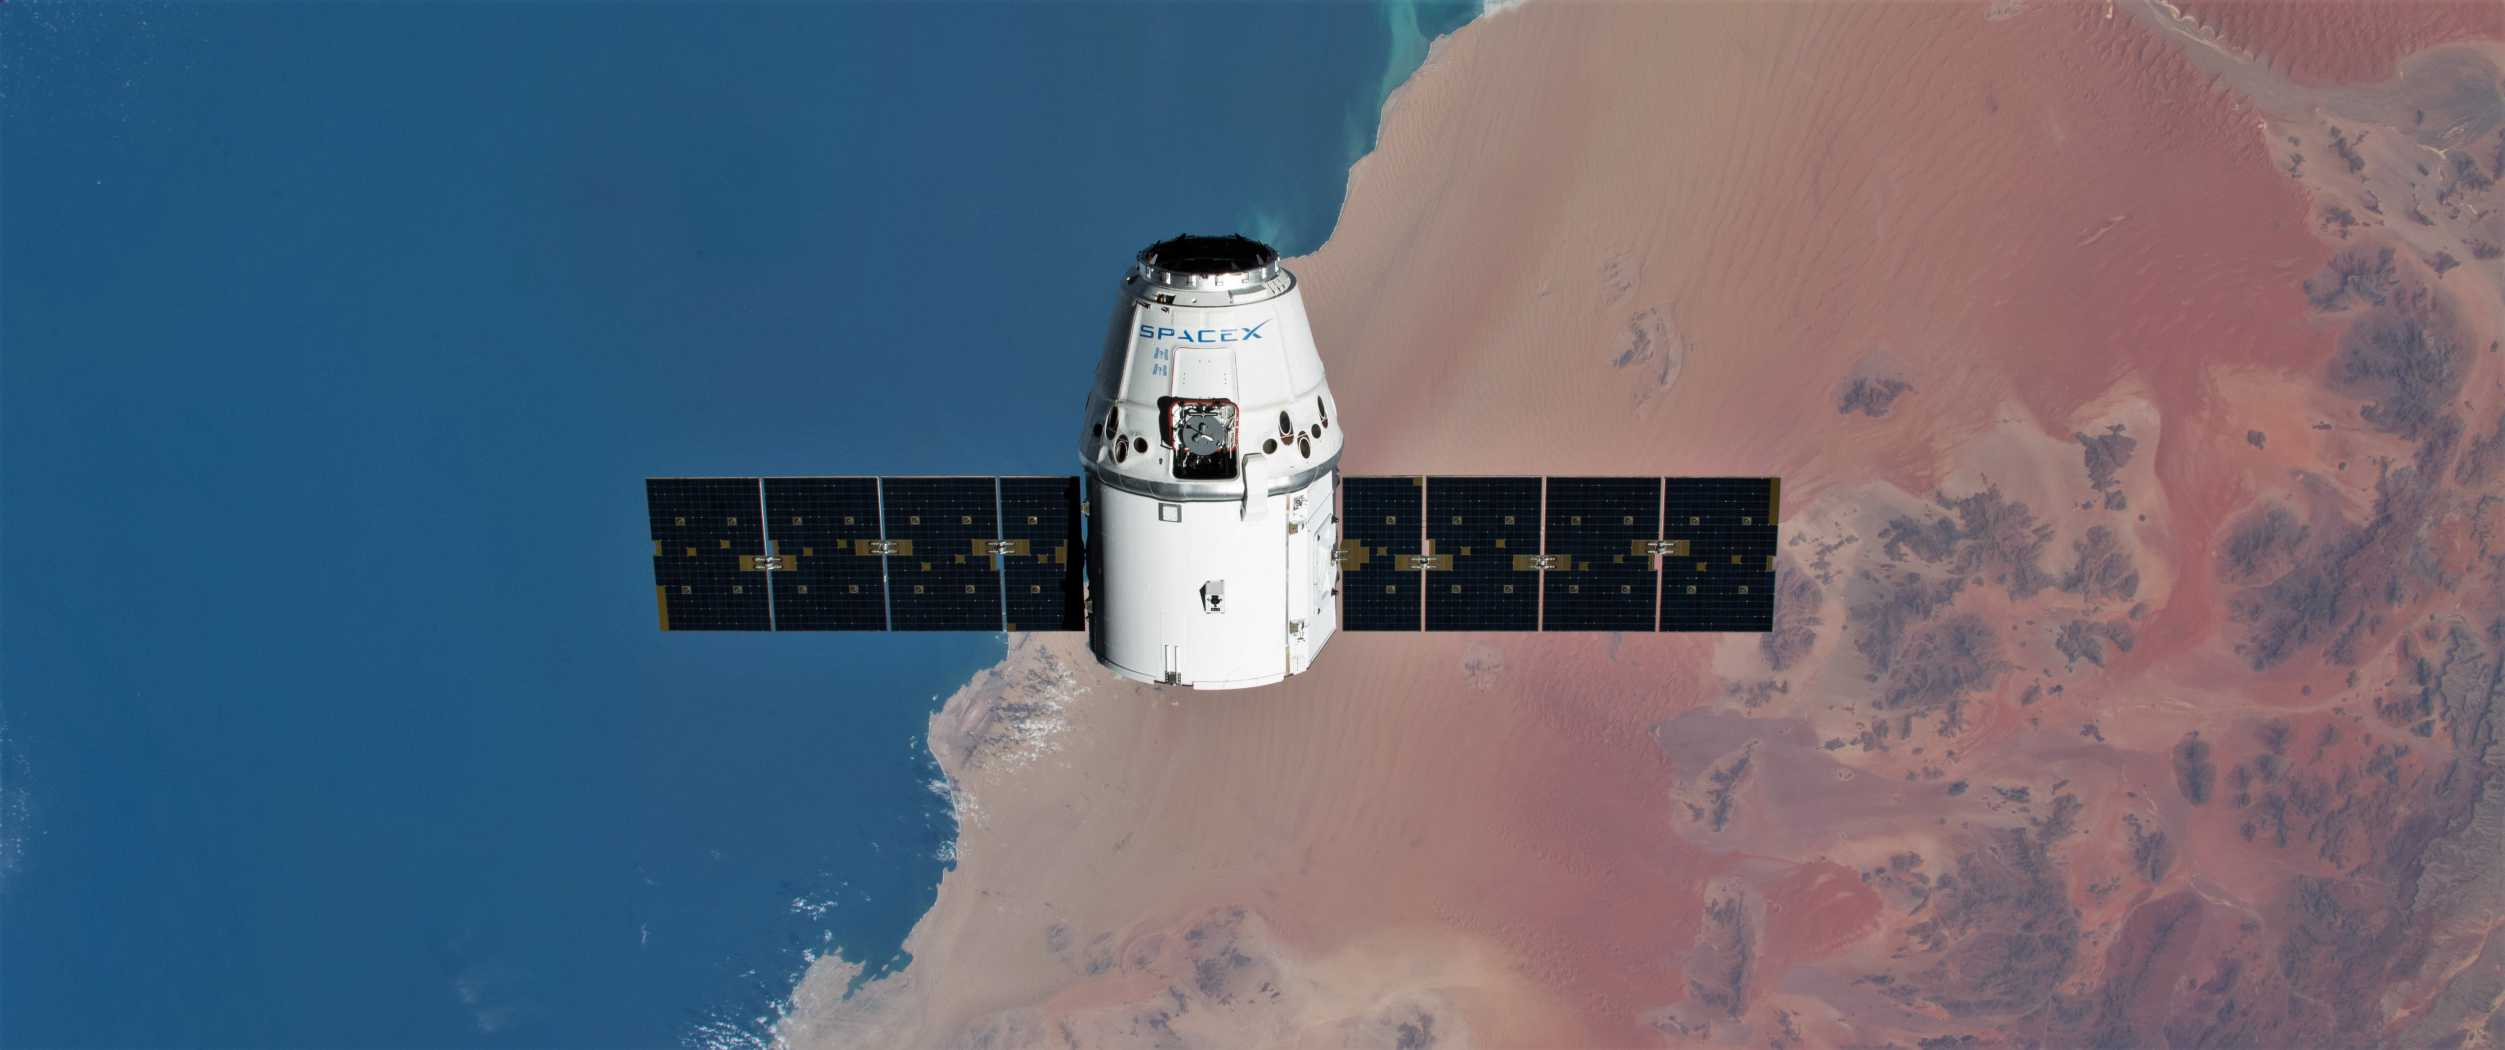 CRS-20 Cargo Dragon C112 ISS arrival 030920 (NASA) 2 crop (c)